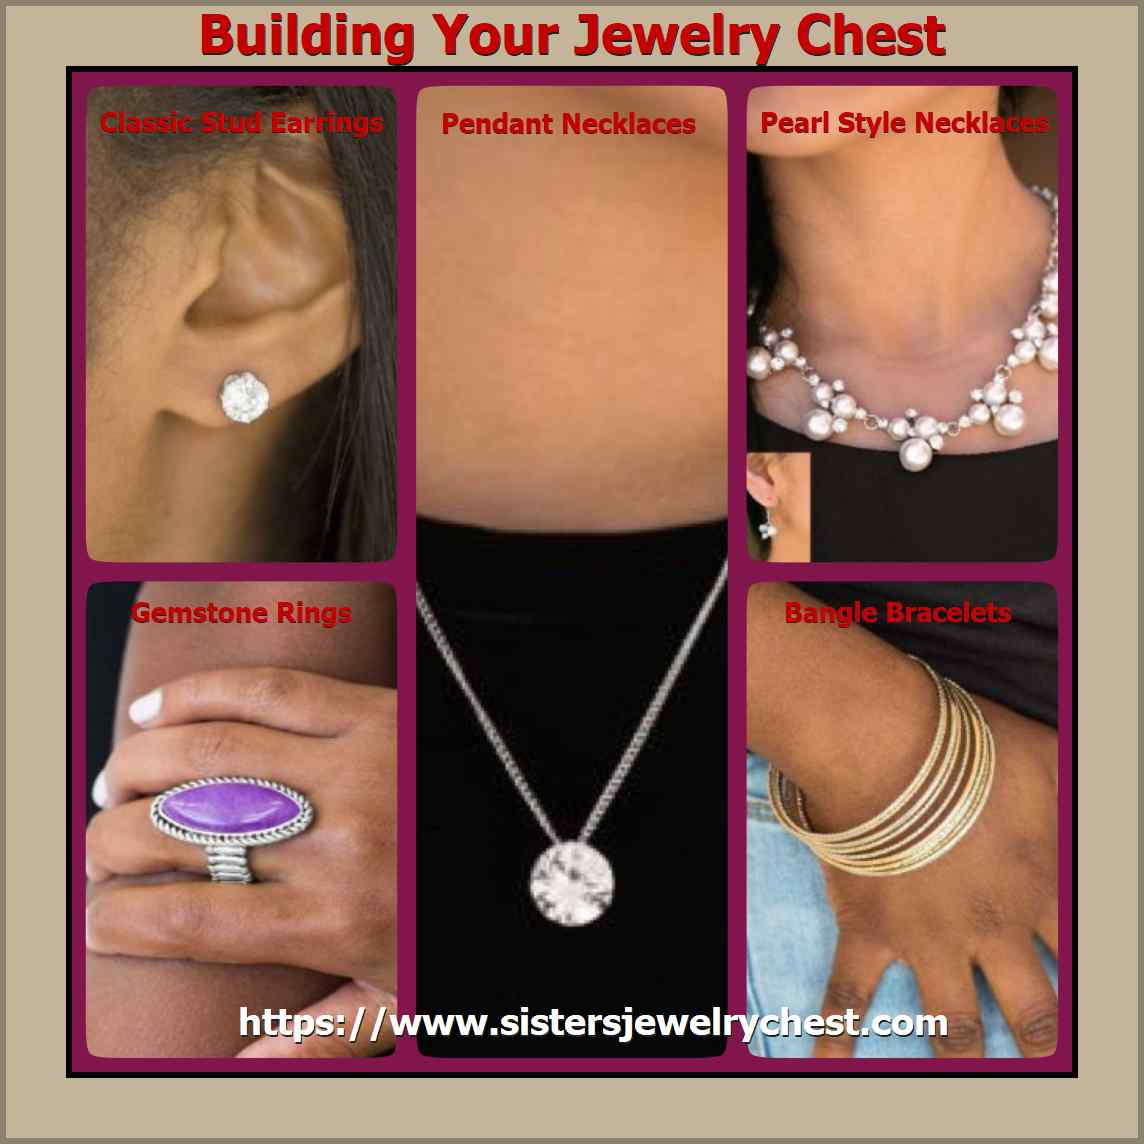 Building Your Jewelry Chest